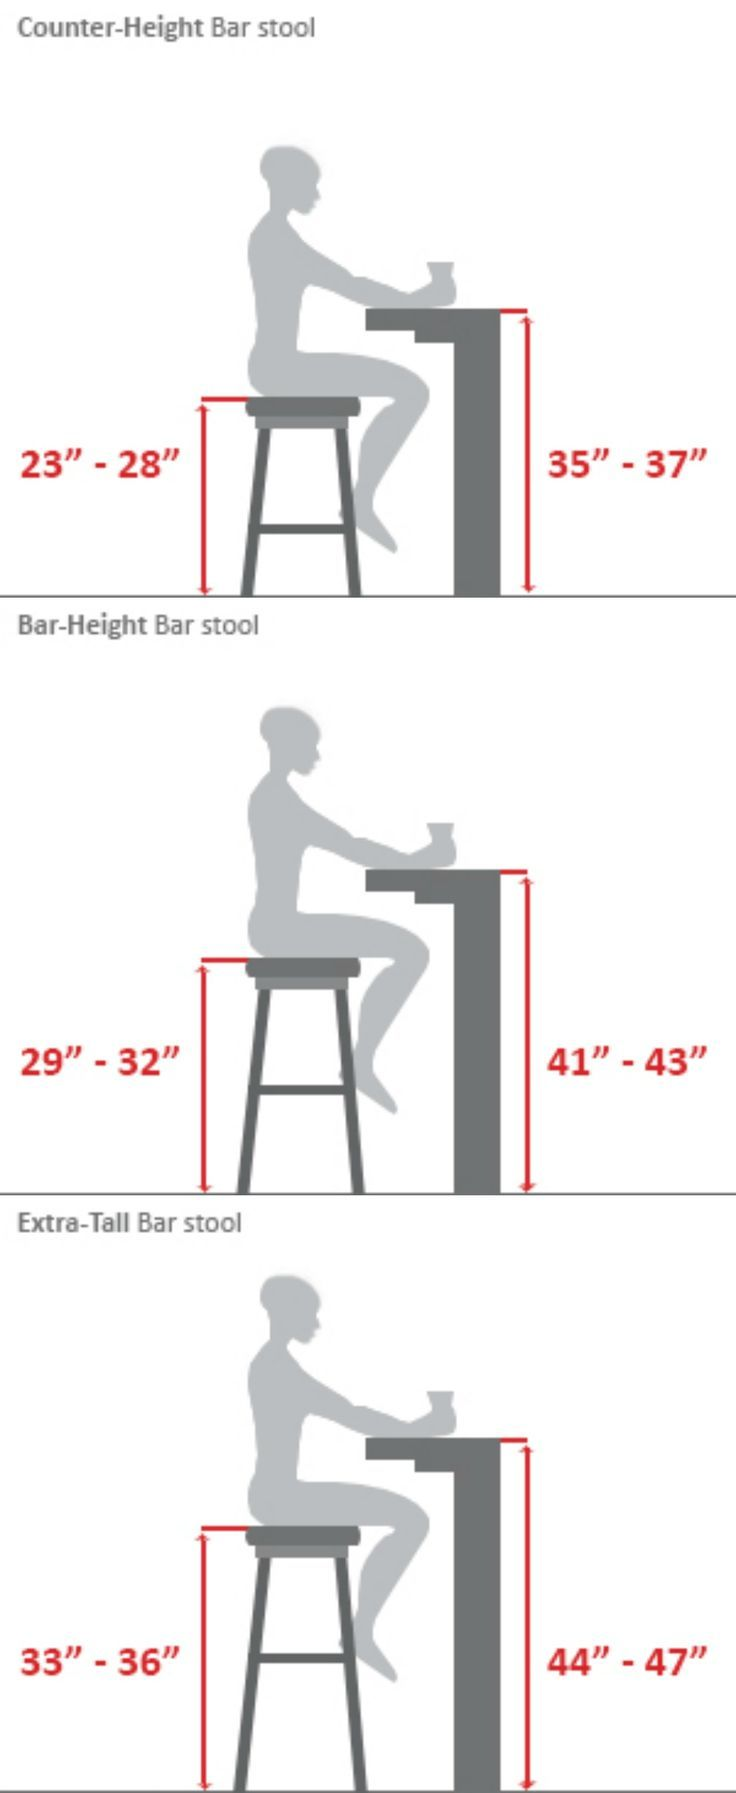 Bar Stool Buying Guide the builders guide When building desks tables or bars these measurements e in handy design interiordesign